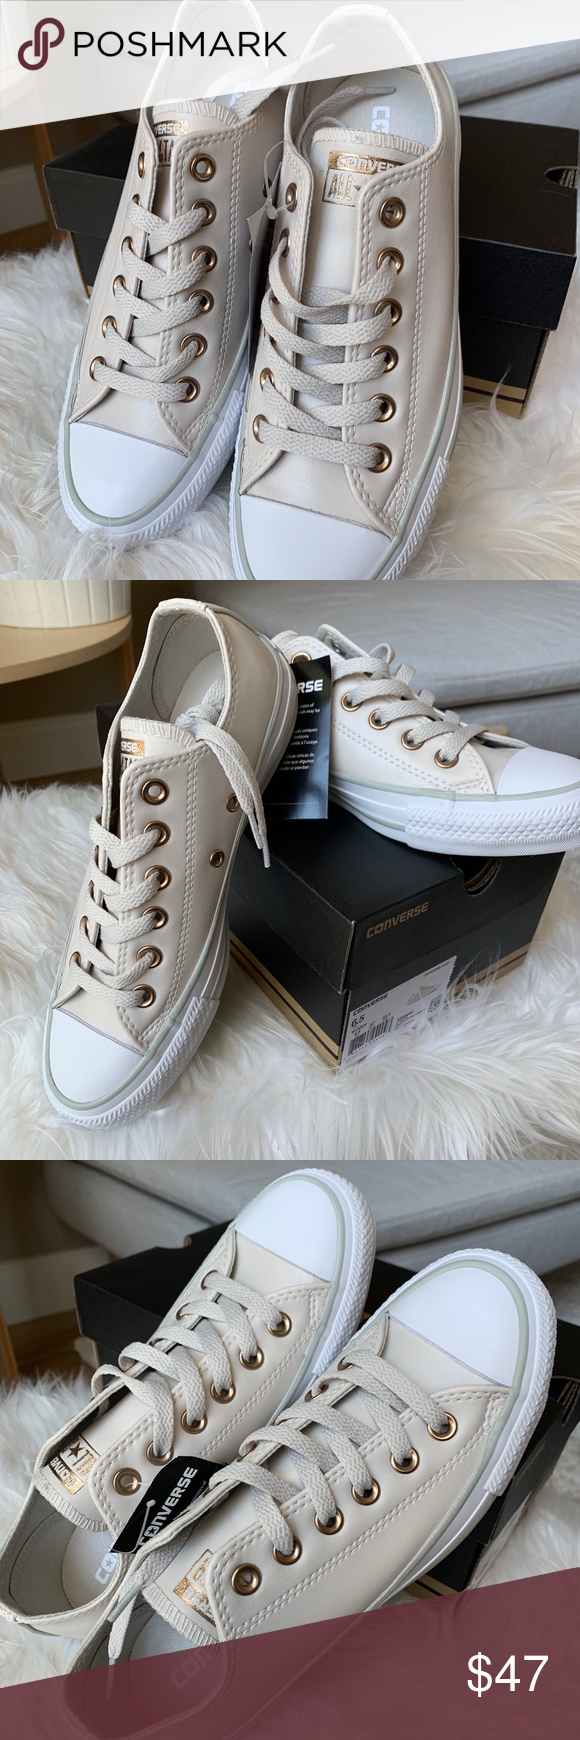 27b06c89147e Converse Chuck Taylor All Star Craft Low Top 6.5 BRAND NEW Converse Chuck  Taylor All Star Craft SL Low Top Sneaker Size 6.5 Women s Color  Pale ...